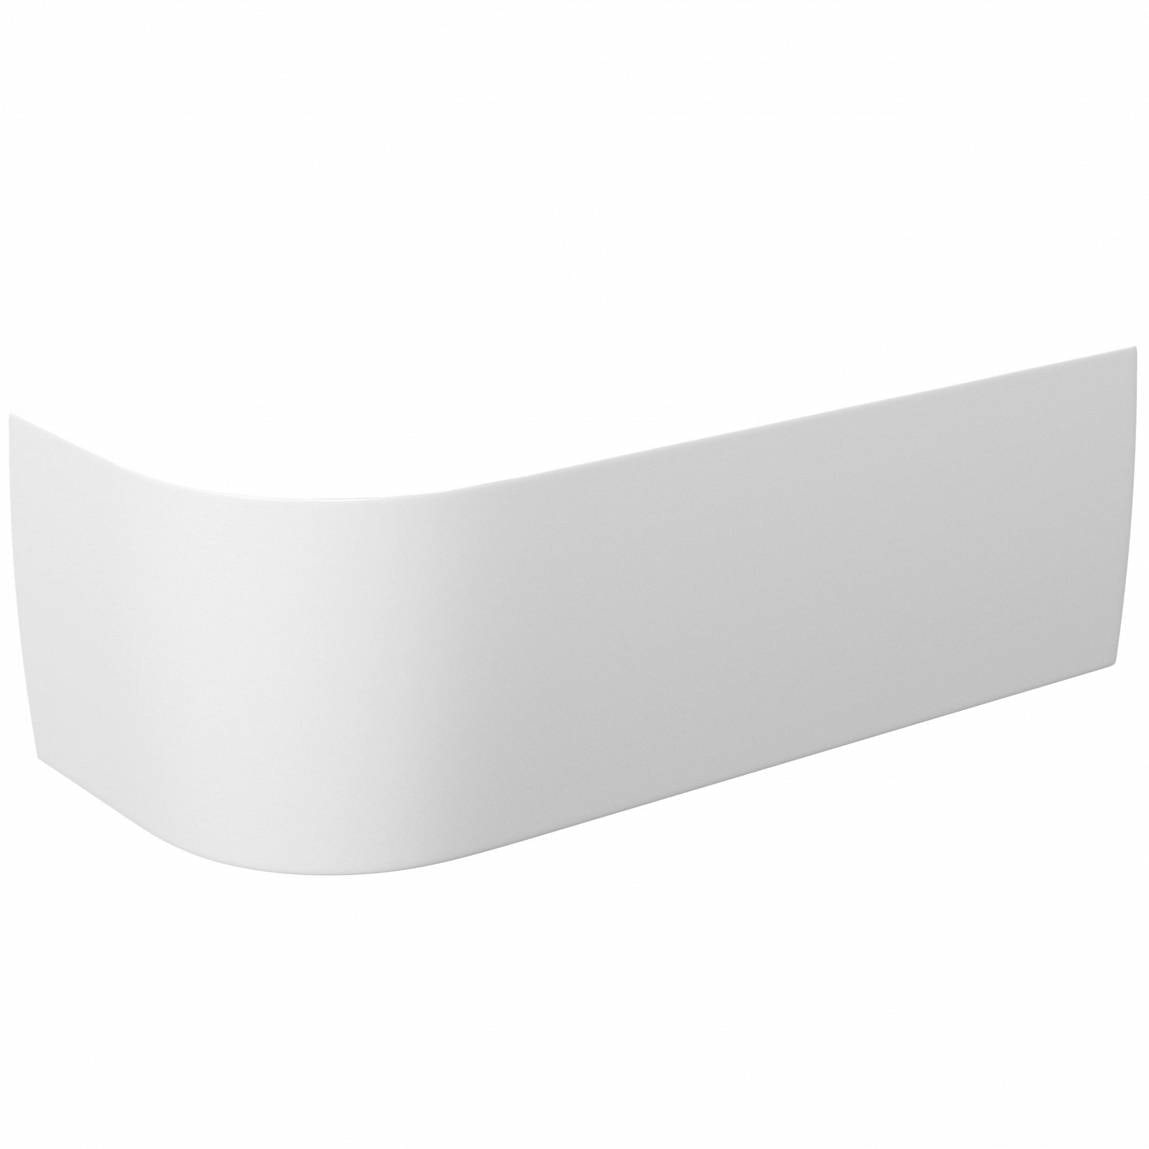 Elsdon D-Shaped Back to Wall Corner Bath Panel RH